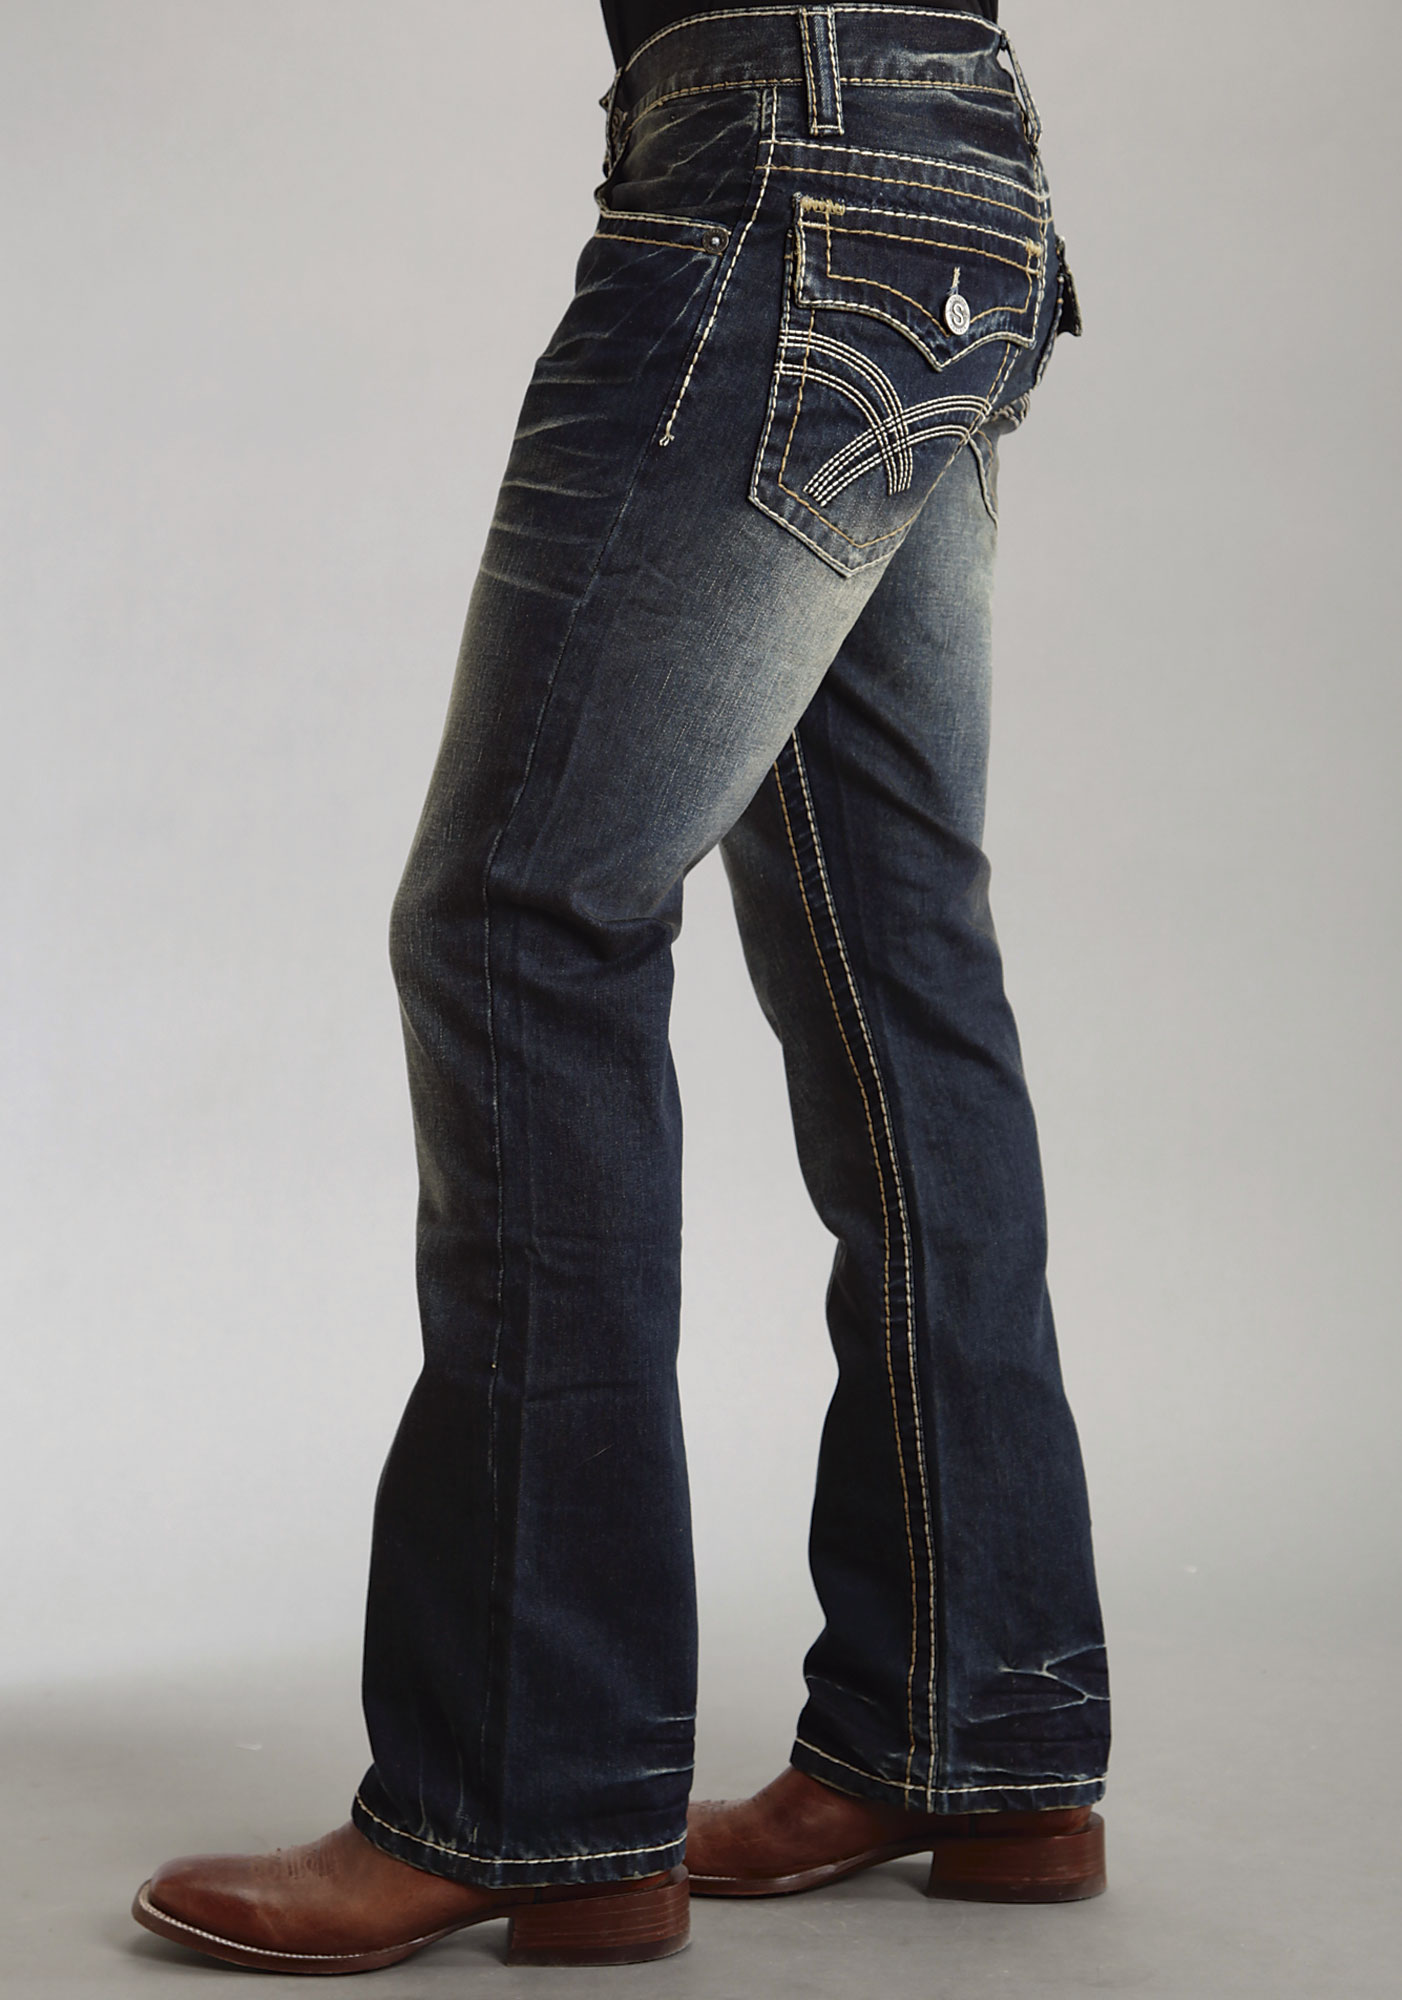 Blue. Gray. Beige. Multi. White. Green. Other. Assorted. See more colors. Price $ to $ Go. Men's Regular Fit Boot-Cut Jeans. Product - Women's Plus-Size 4-Pocket Stretch Bootcut Jeans, Available in Regular and Petite Lengths. Best Seller. Product Image. Price $ Product Title.